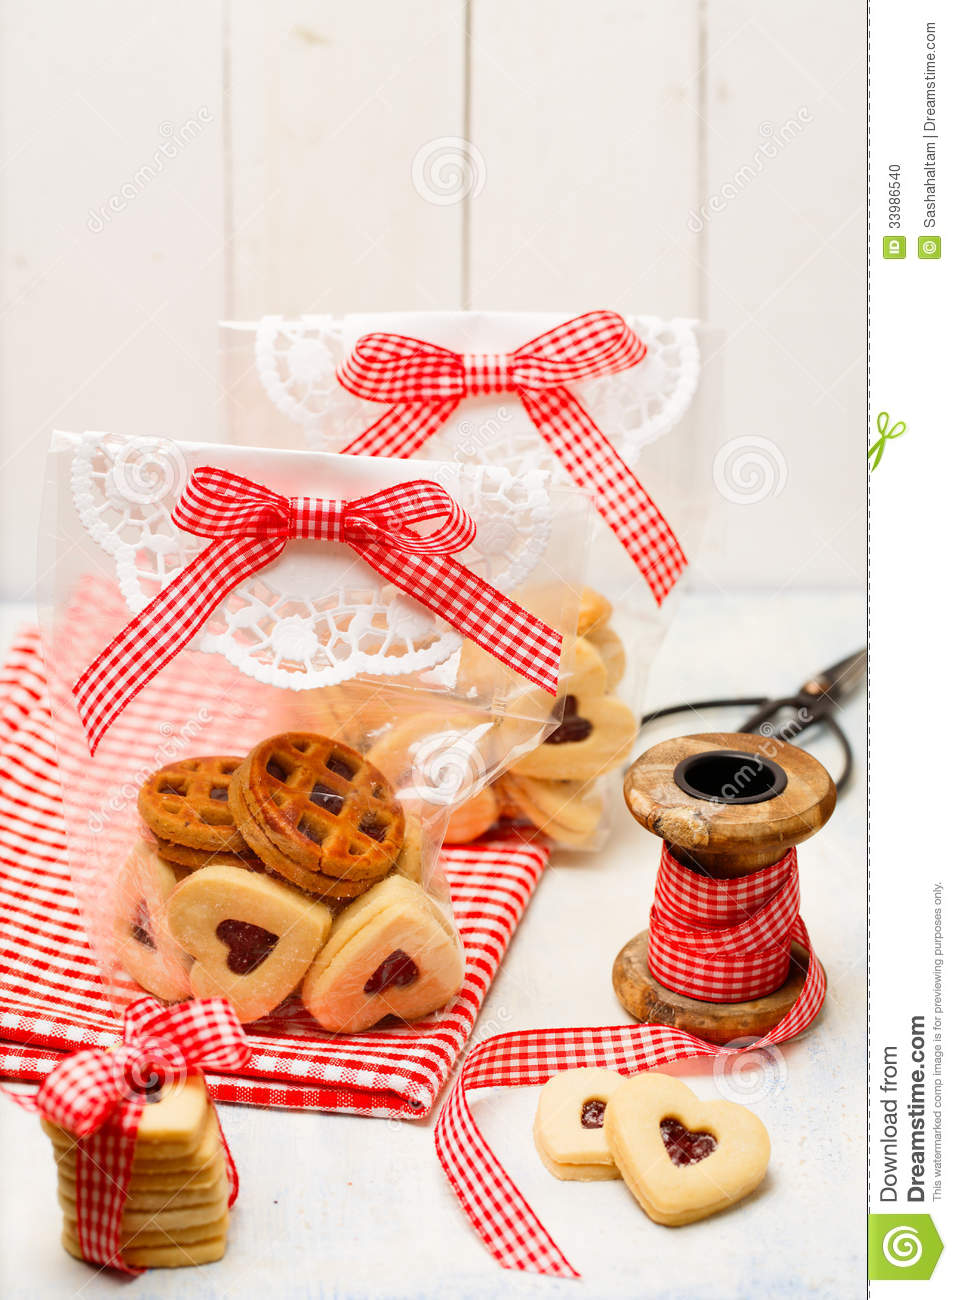 Handmade Gifts With Cookies For Christmas Stock Photo